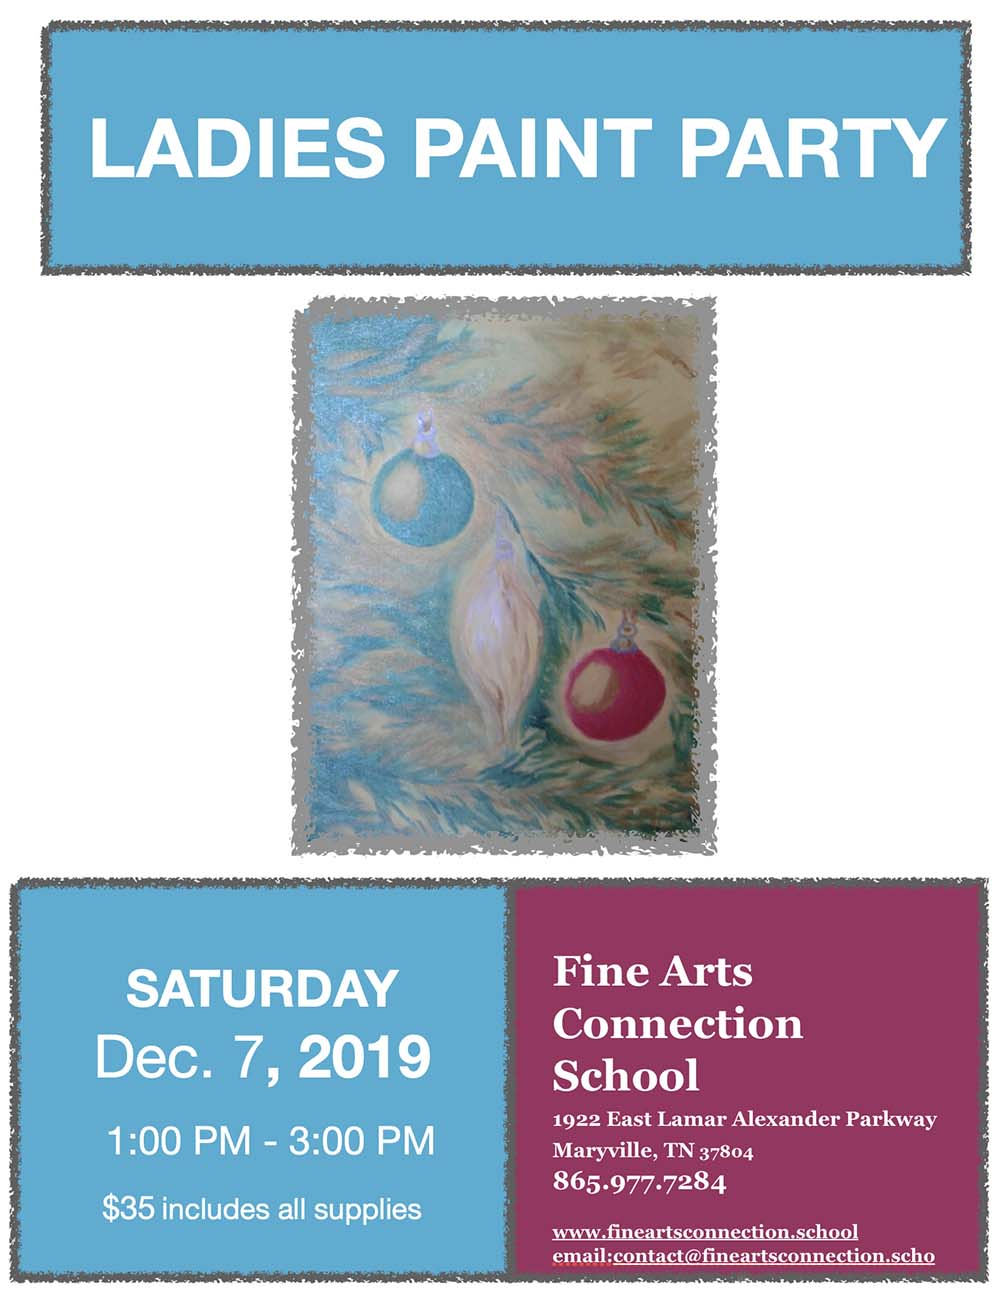 Ladies Paint Party